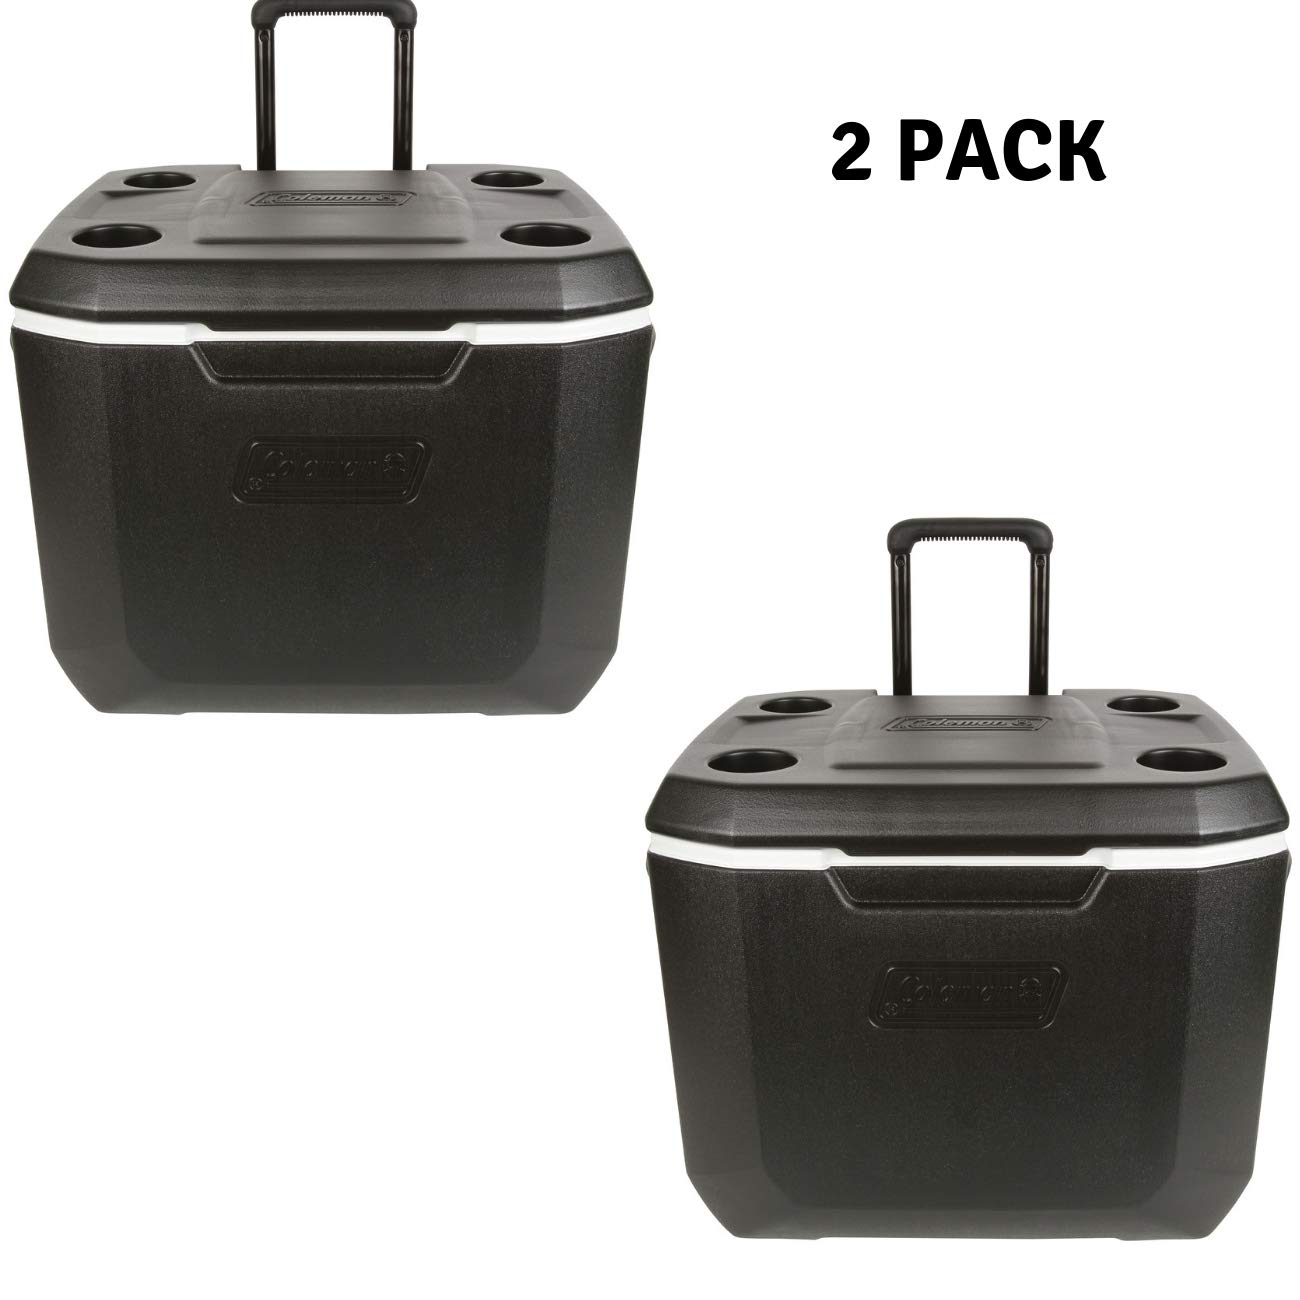 Coleman 50-Quart Xtreme 5-Day Heavy-Duty Cooler with Wheels, Black, 2 Pack